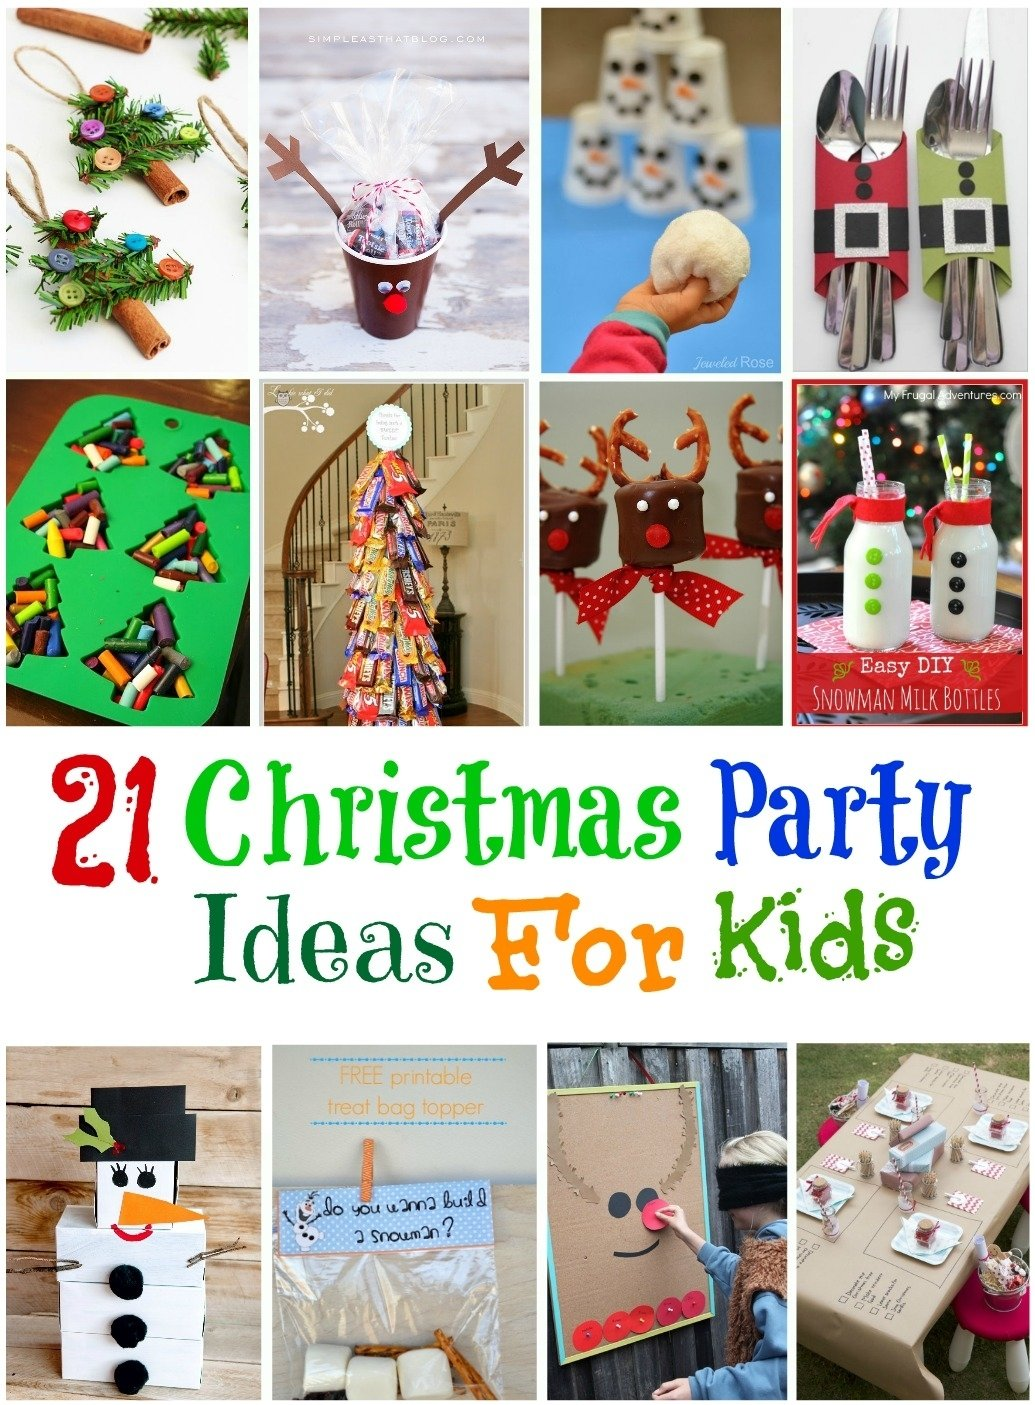 10 Cute Holiday Party Ideas For Kids kids christmas party idea positivemind 2020